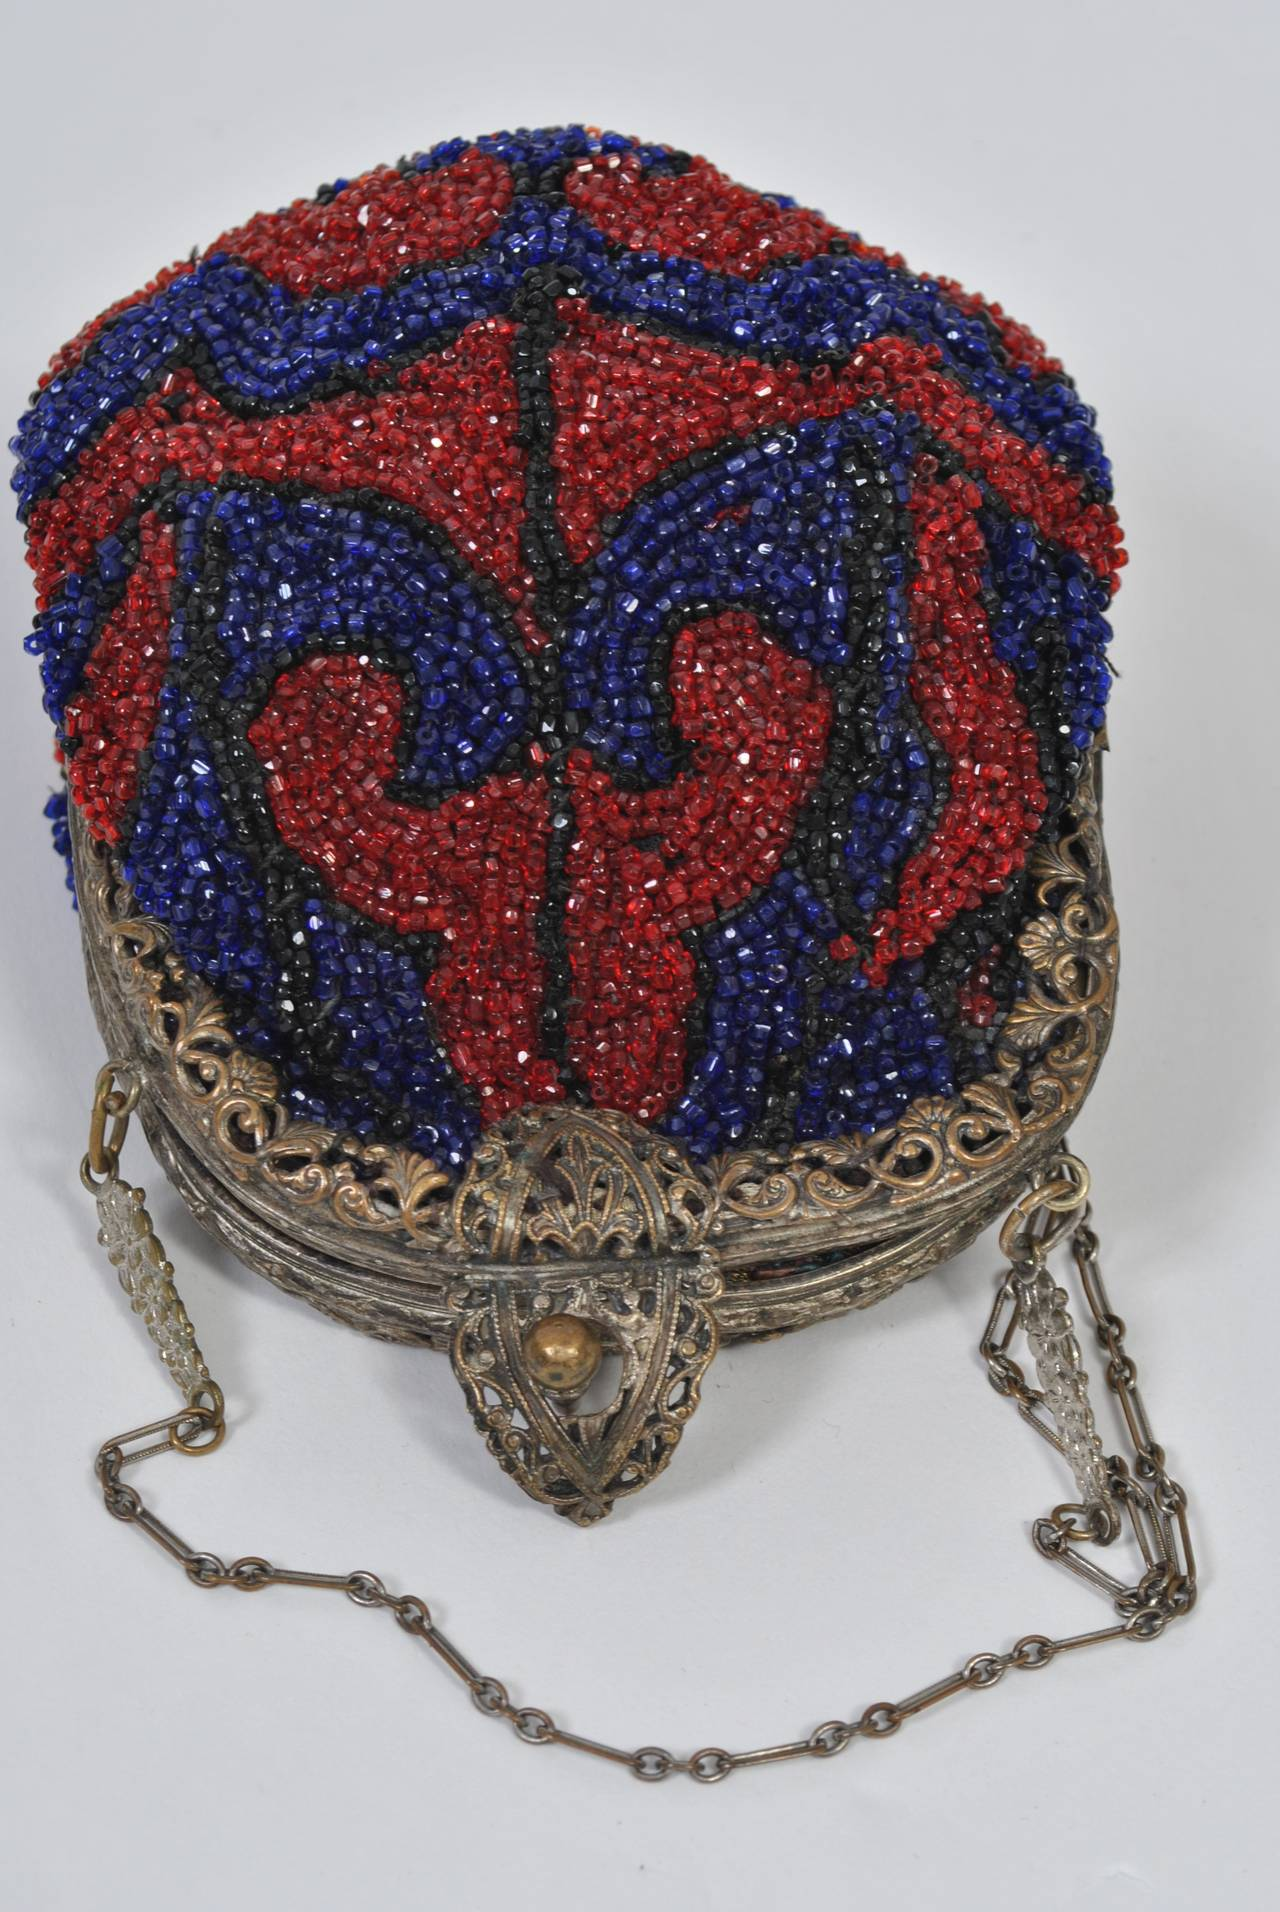 1930s Red and Blue Beaded Purse In Excellent Condition For Sale In Alford, MA